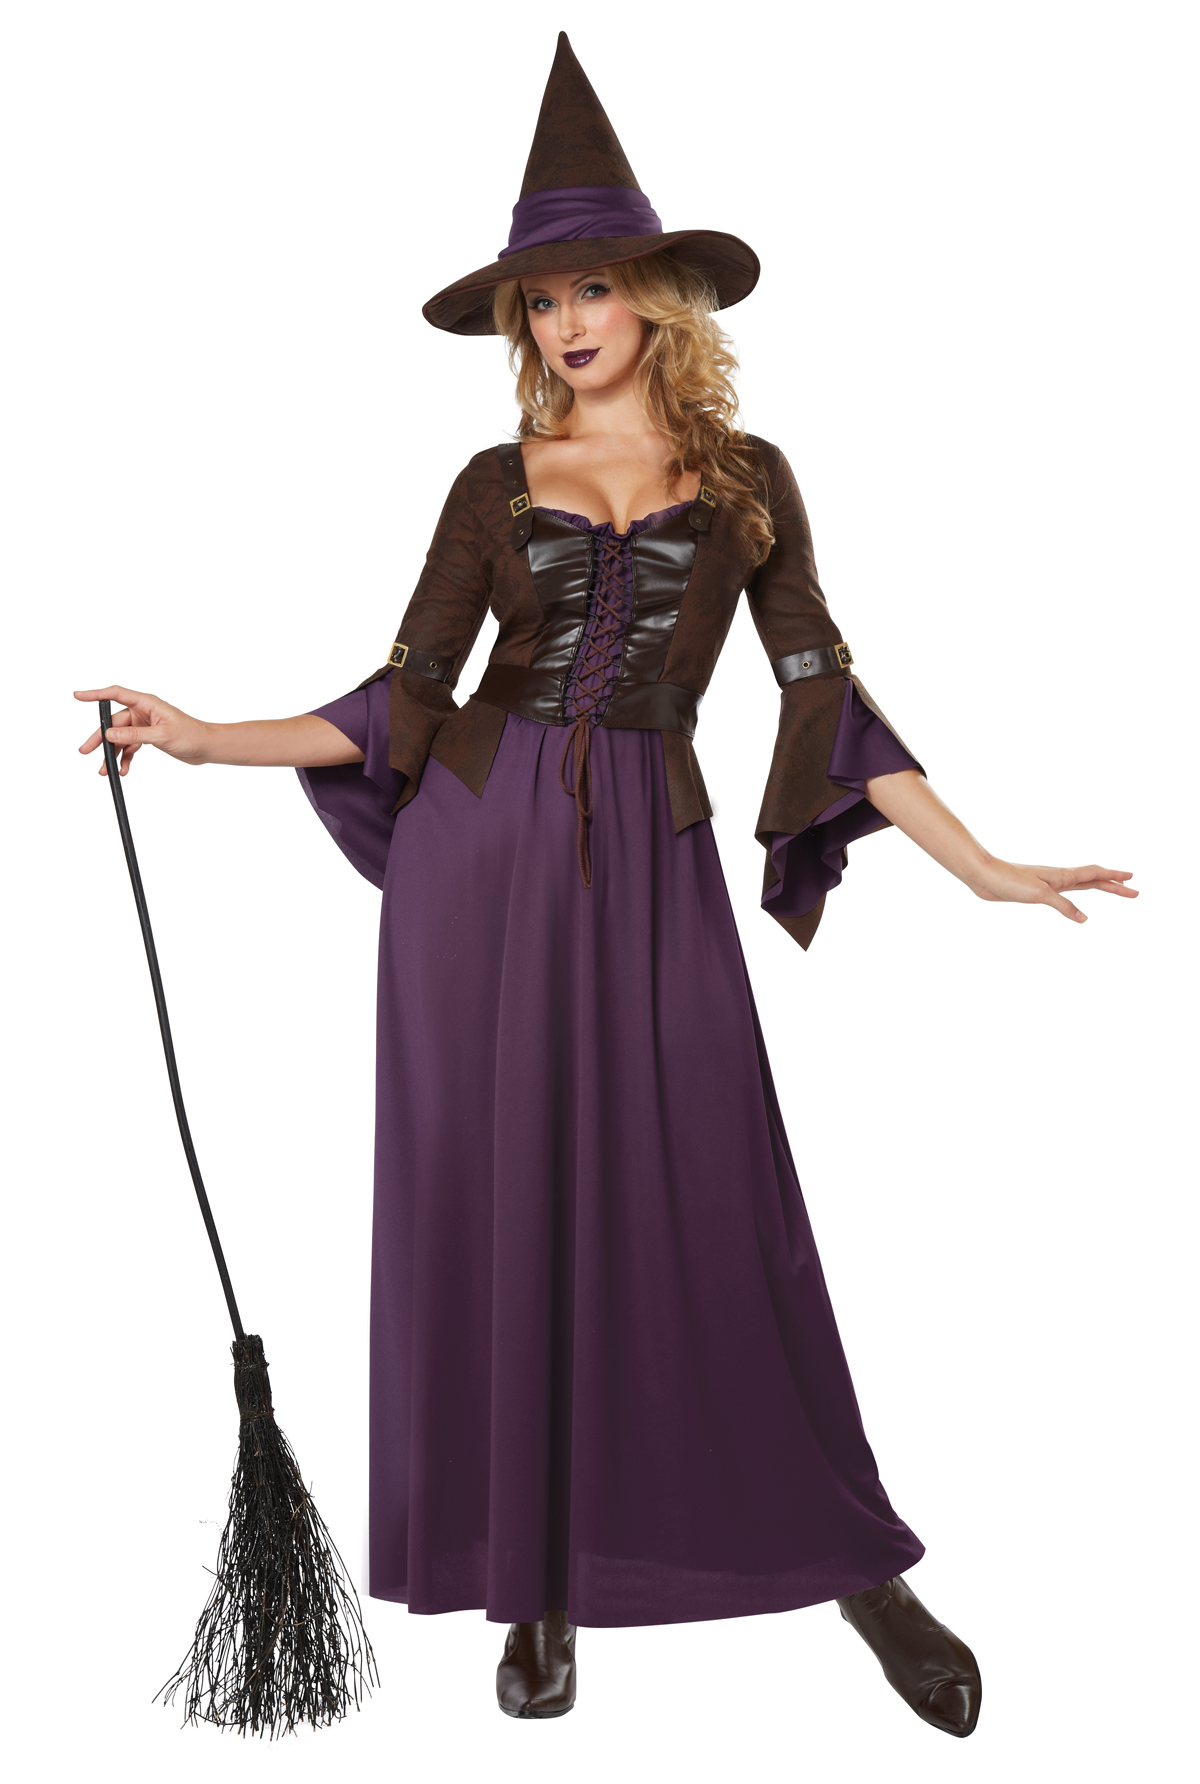 womens salem witch halloween costume cosplay full complete set dress vest hat - Salem Witch Halloween Costume